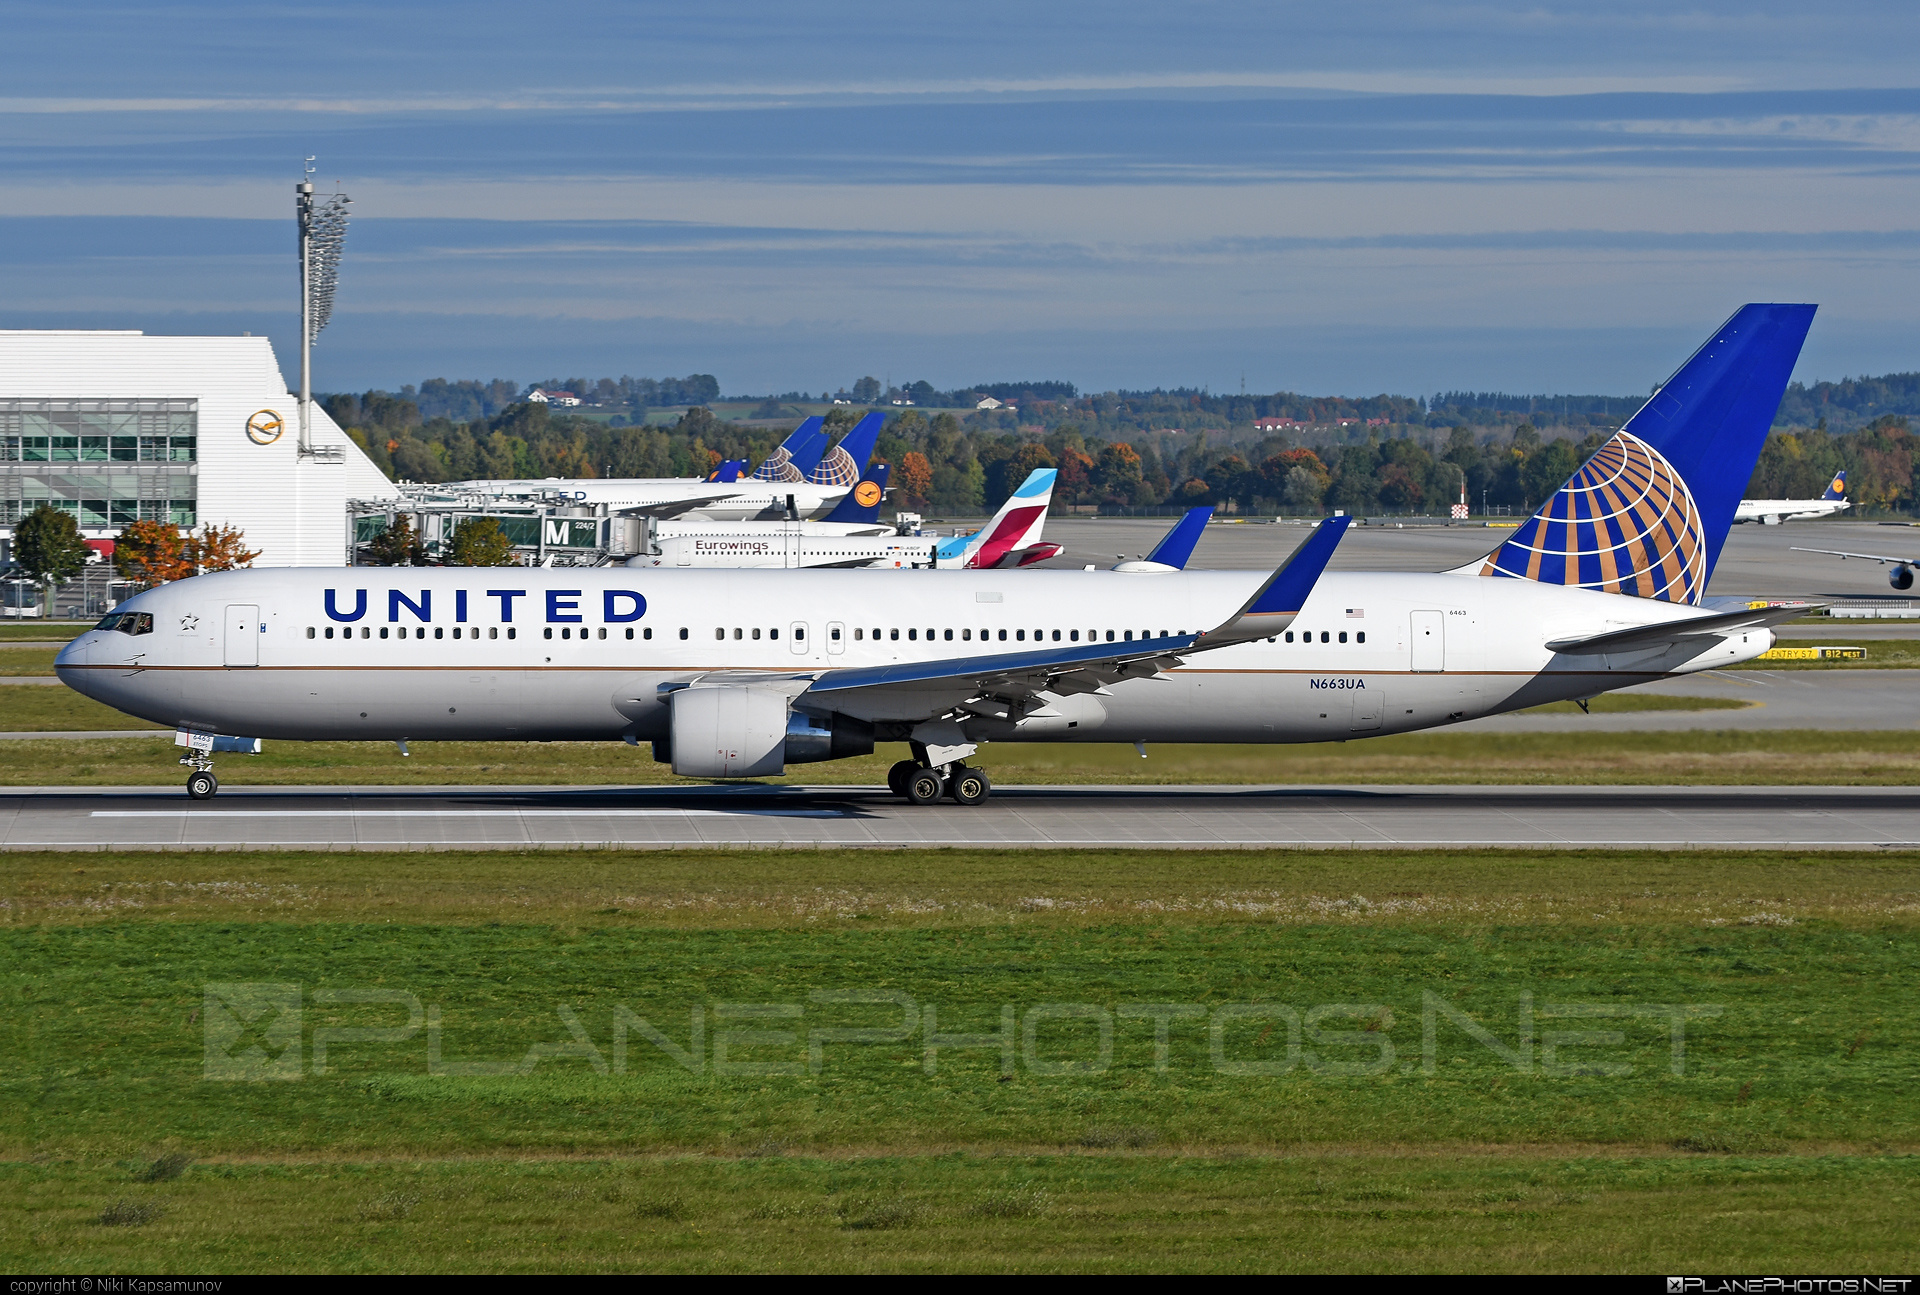 Boeing 767-300ER - N663UA operated by United Airlines #b767 #b767er #boeing #boeing767 #unitedairlines